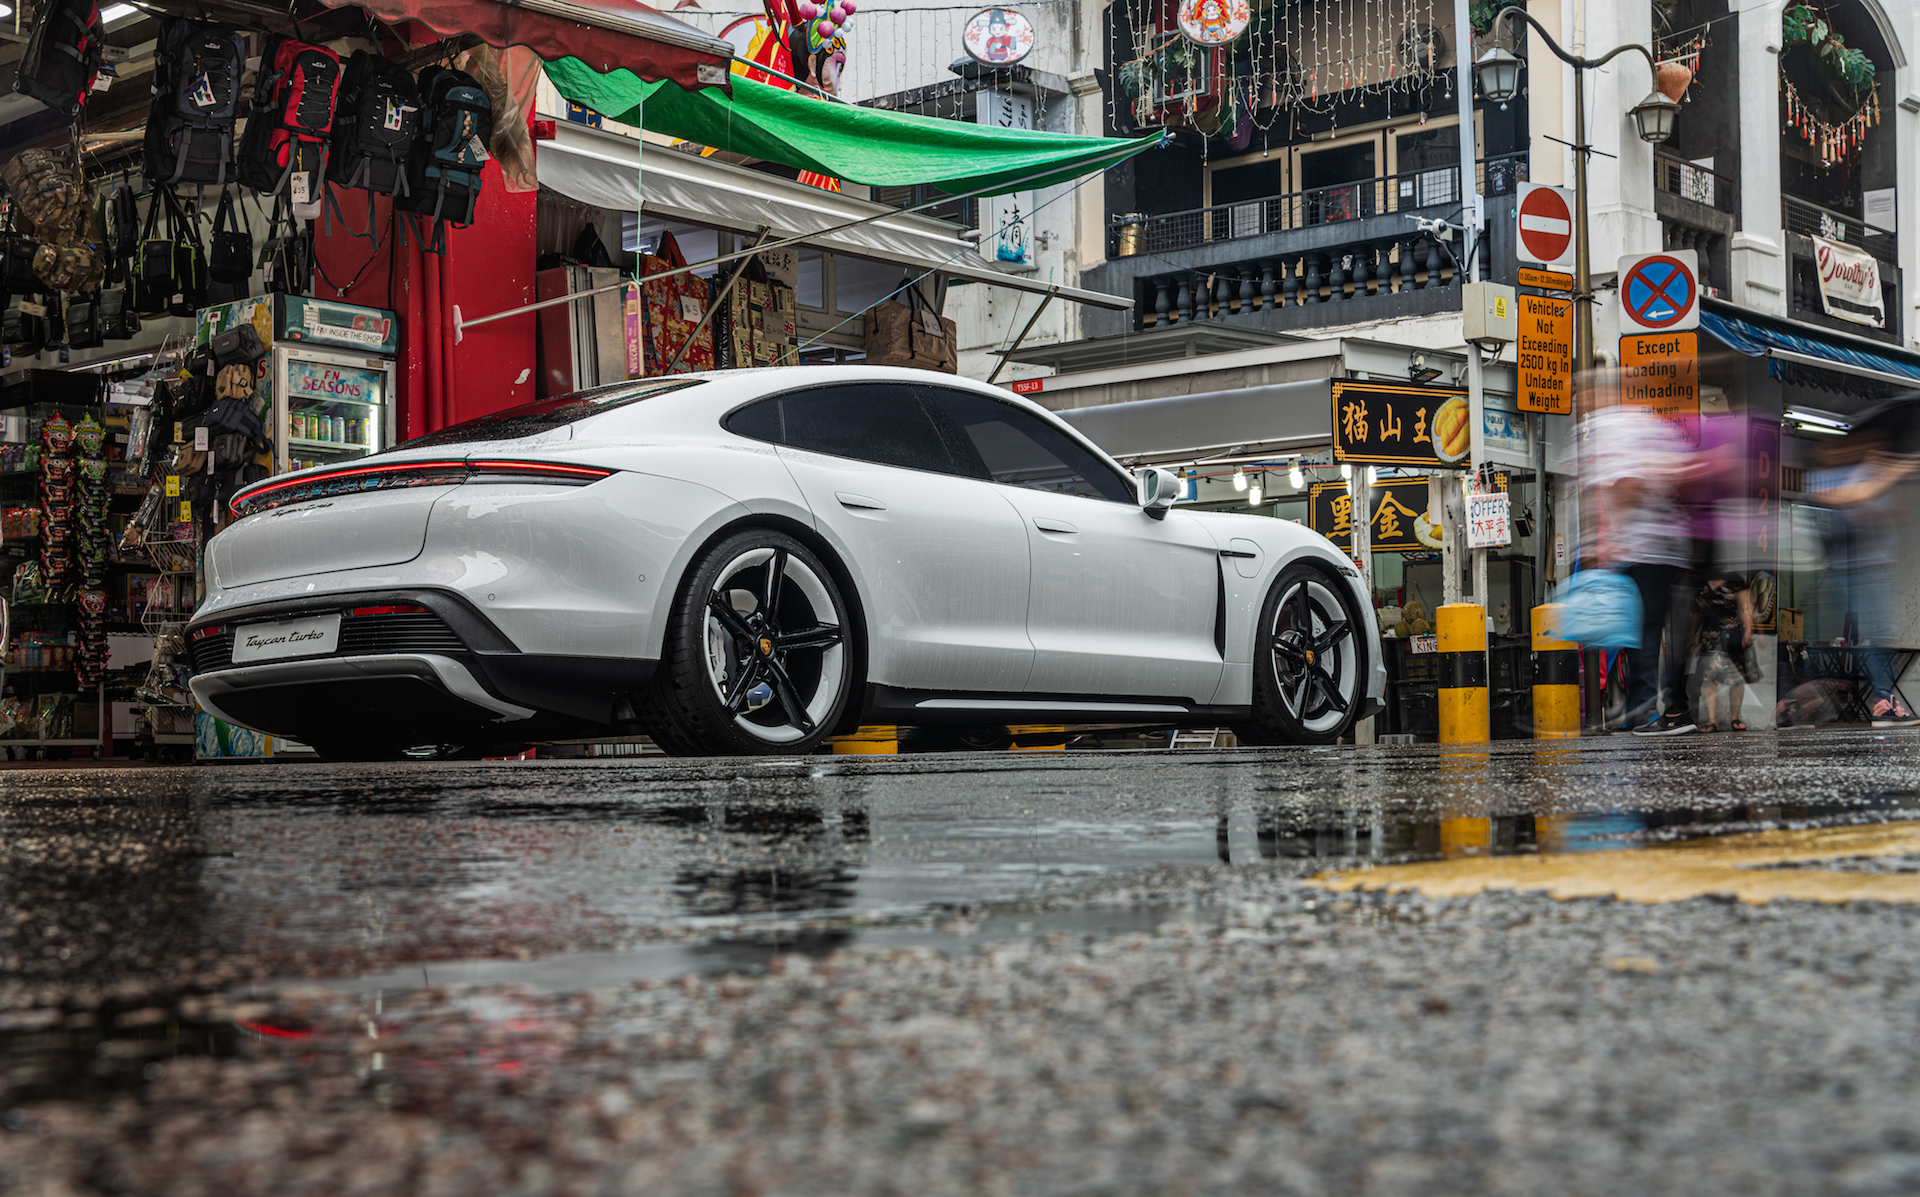 PORSCHE TAYCAN: Now officially launched in Singapore